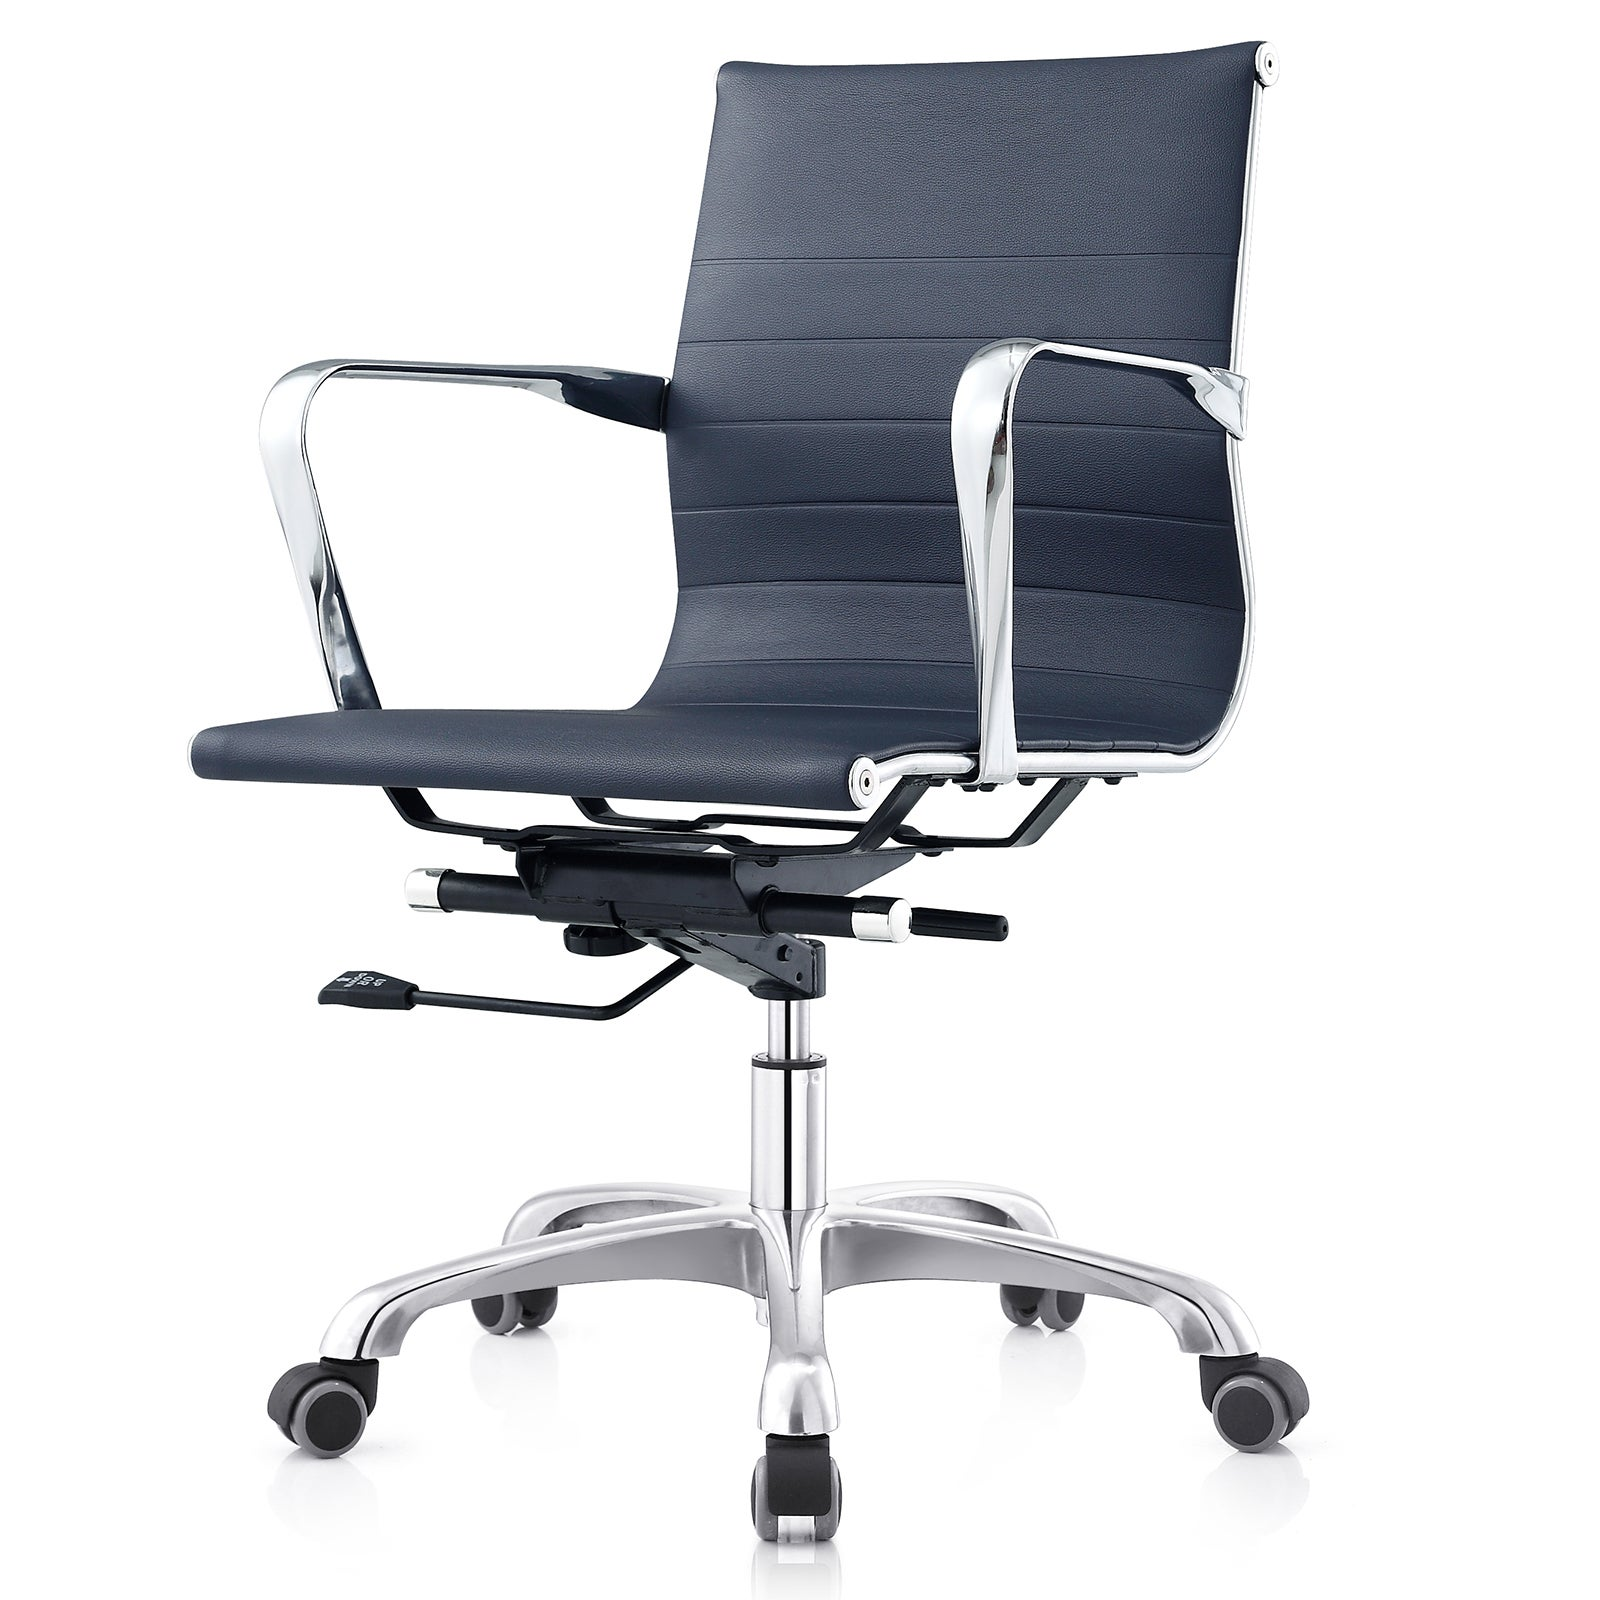 MC505 Ribbed Leatherette Mid-back Executive Office Chair